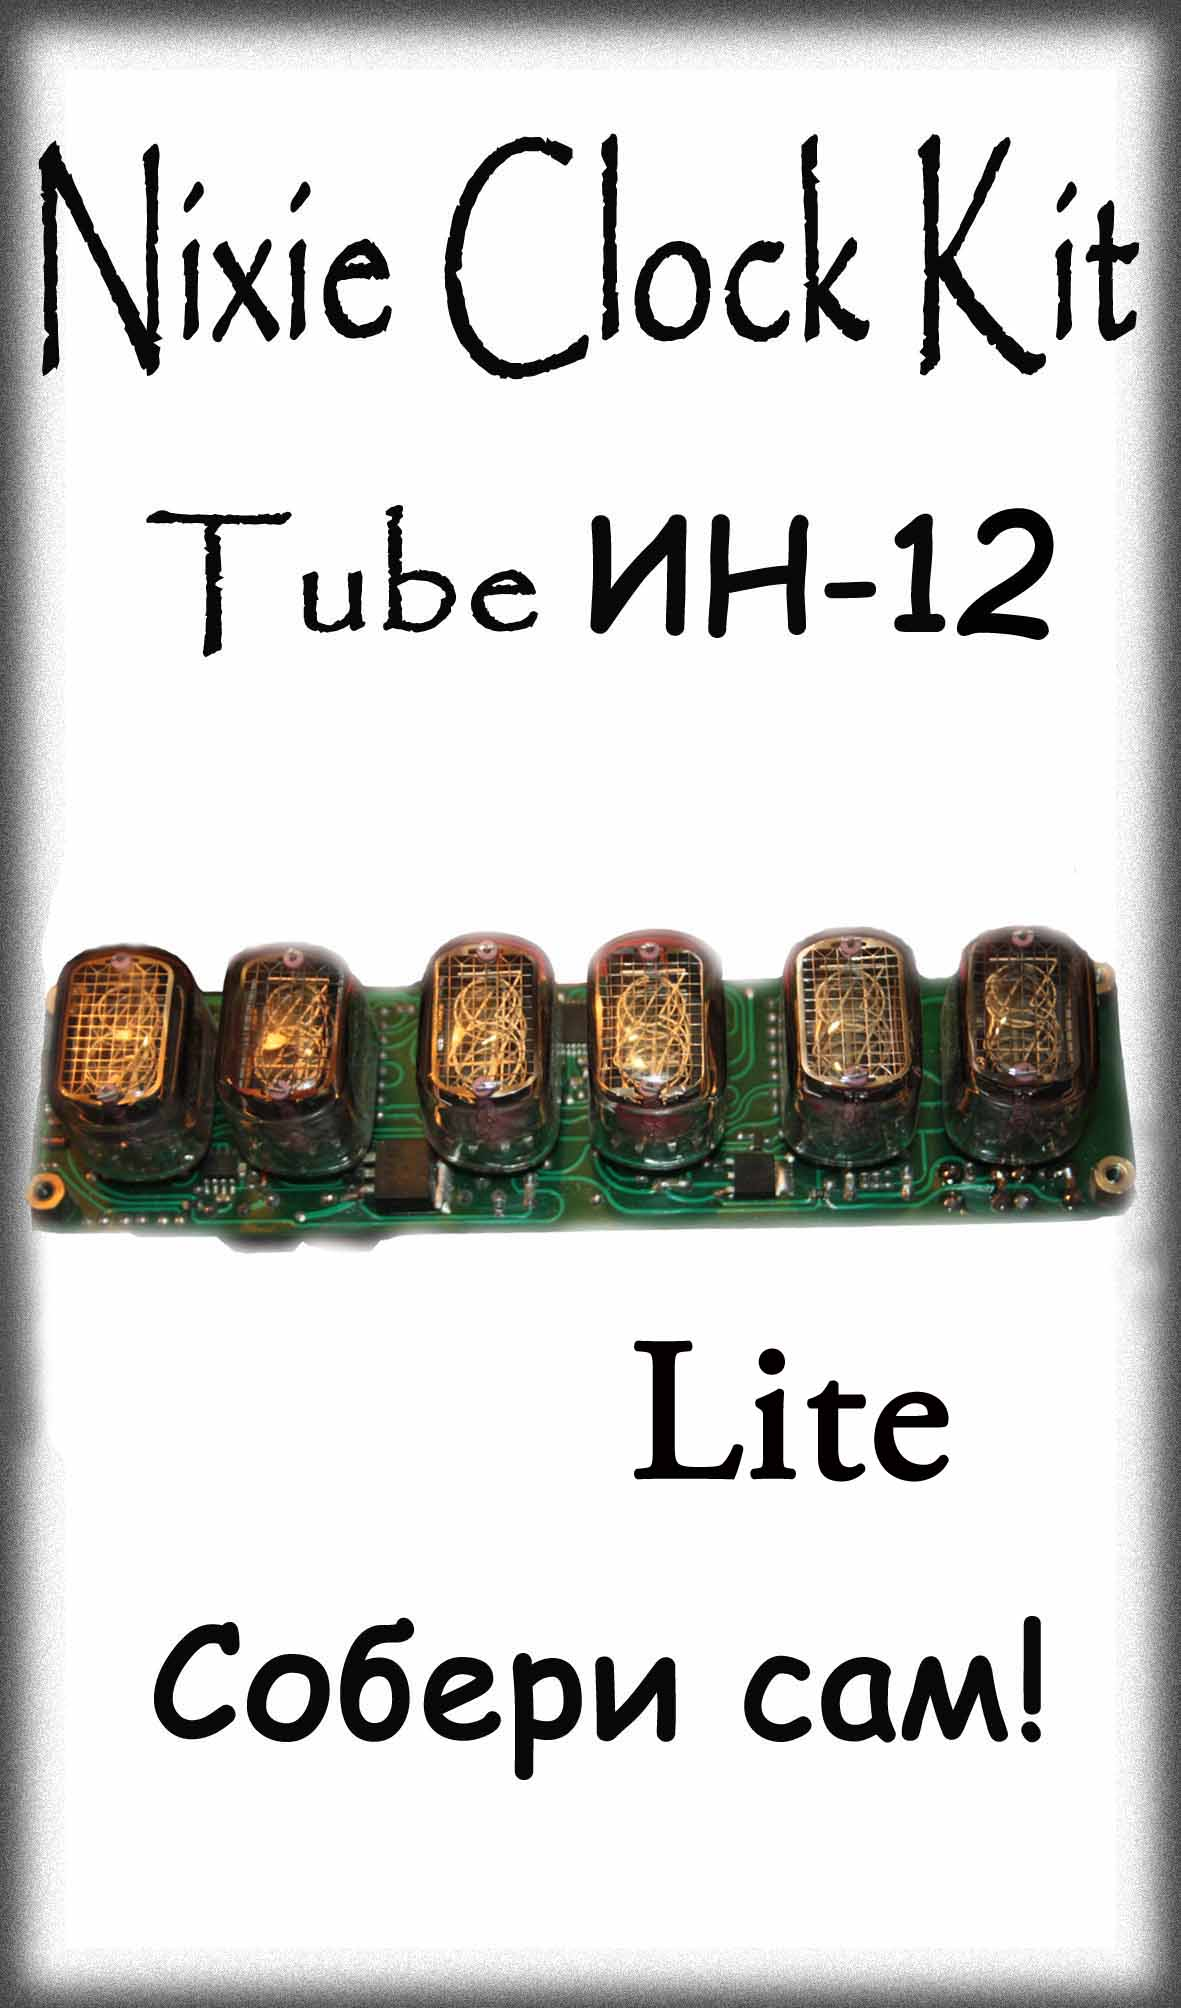 Nixie Clock Kit IN12 6-Tube Lite